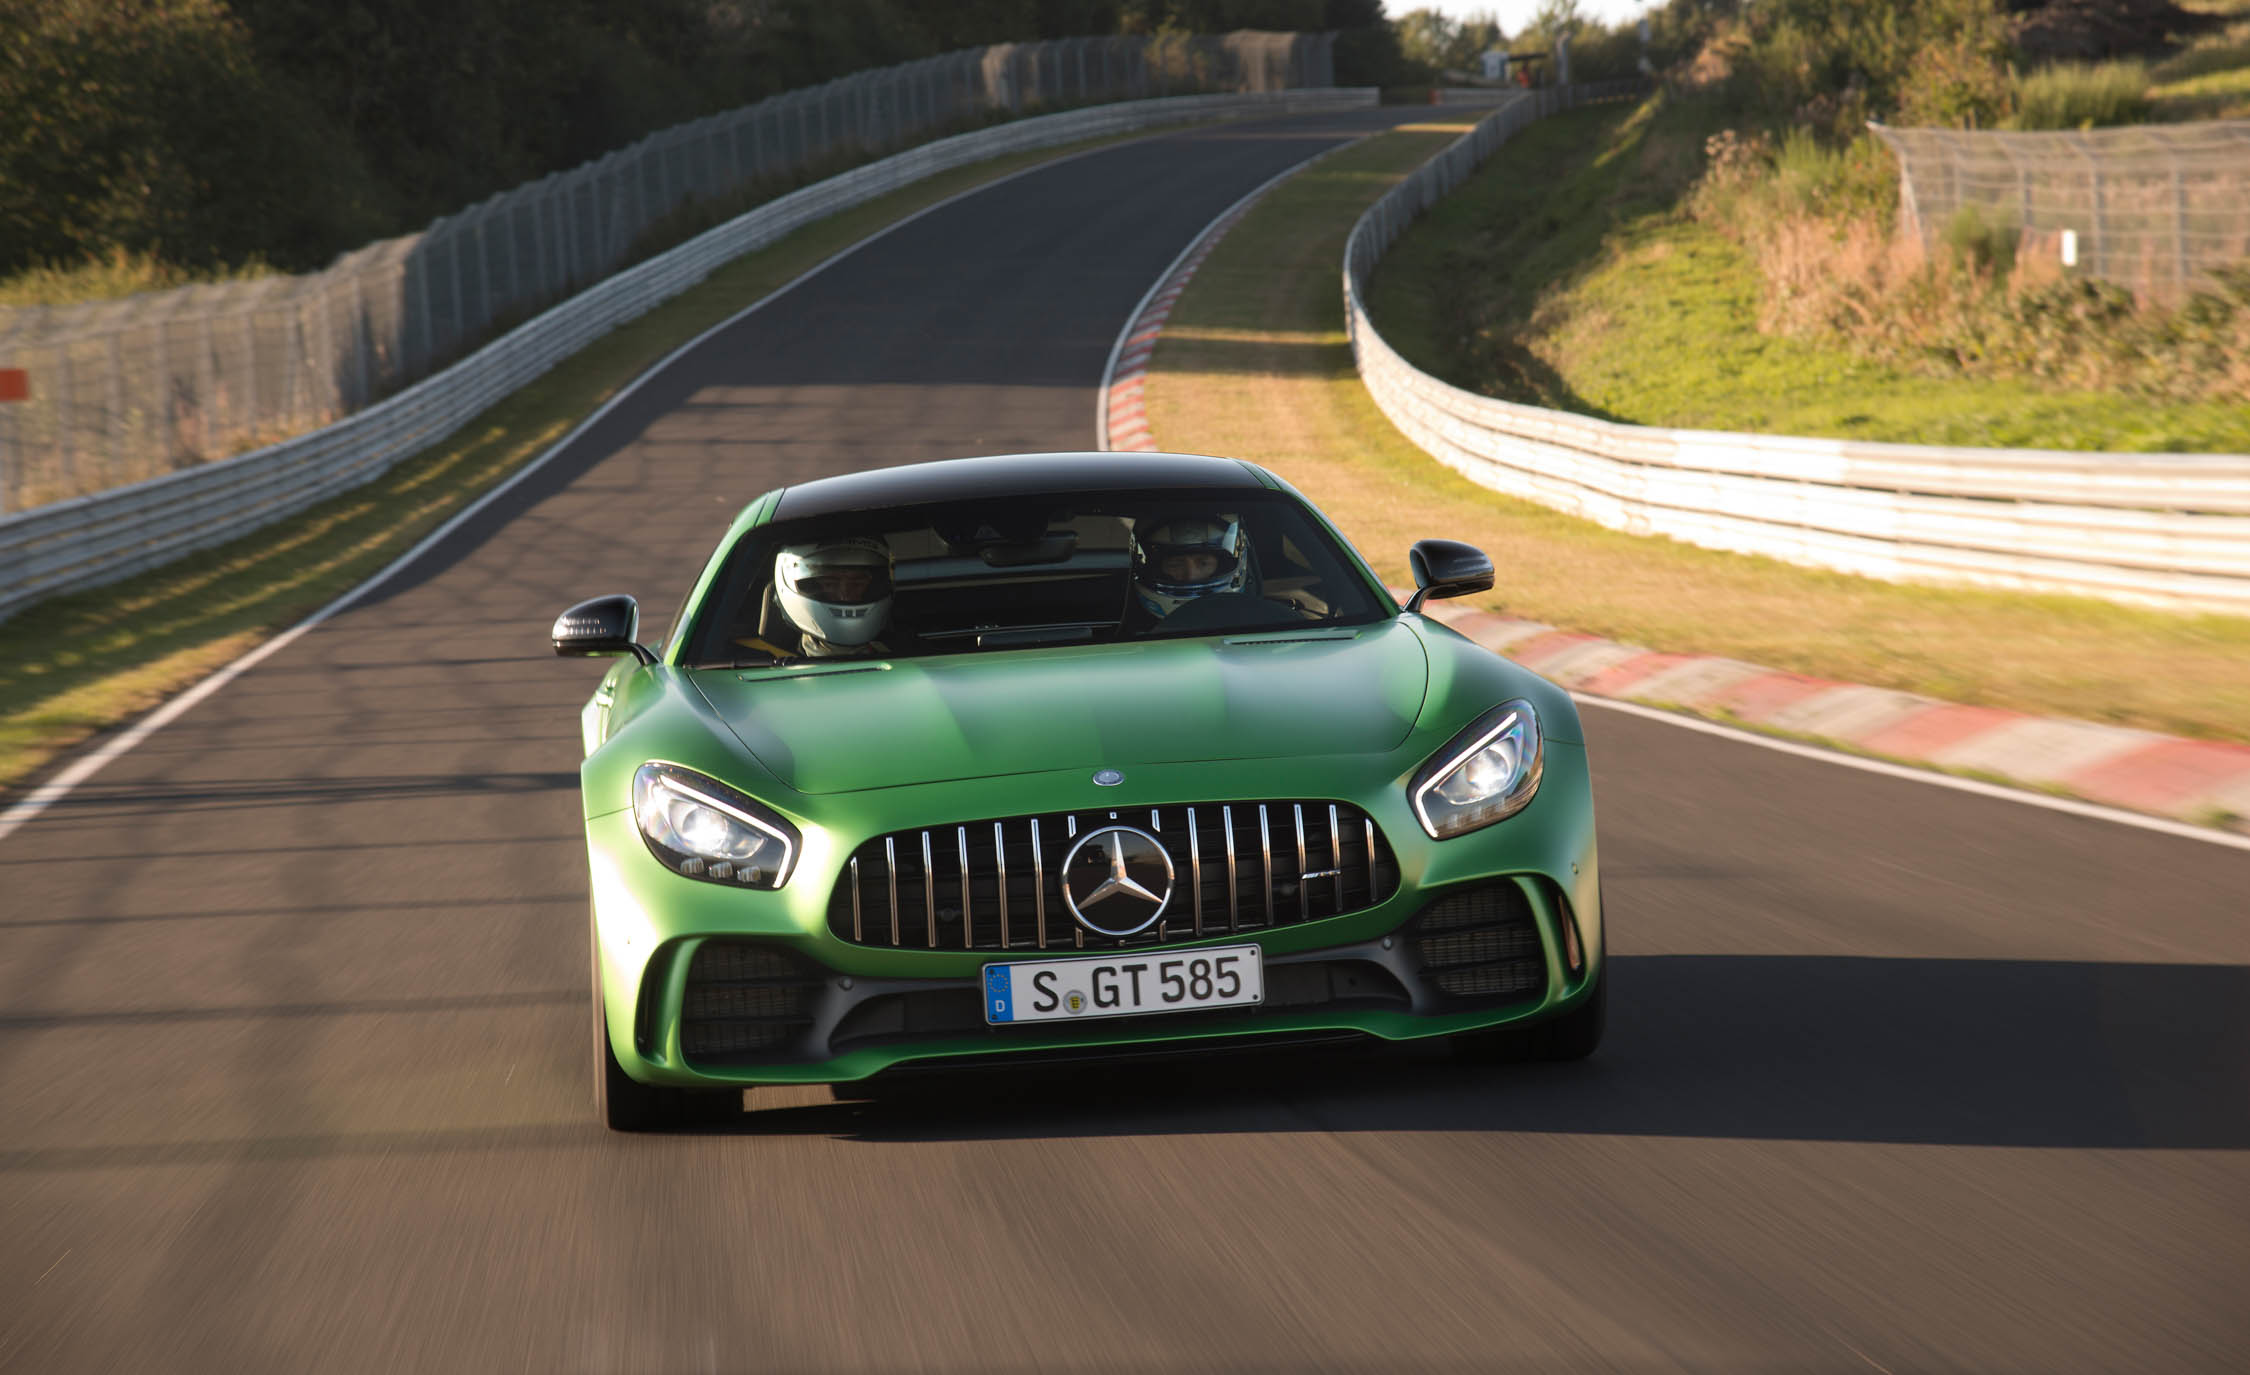 2017 Mercedes Amg Gt R Circuit Test Front View (Photo 2 of 22)